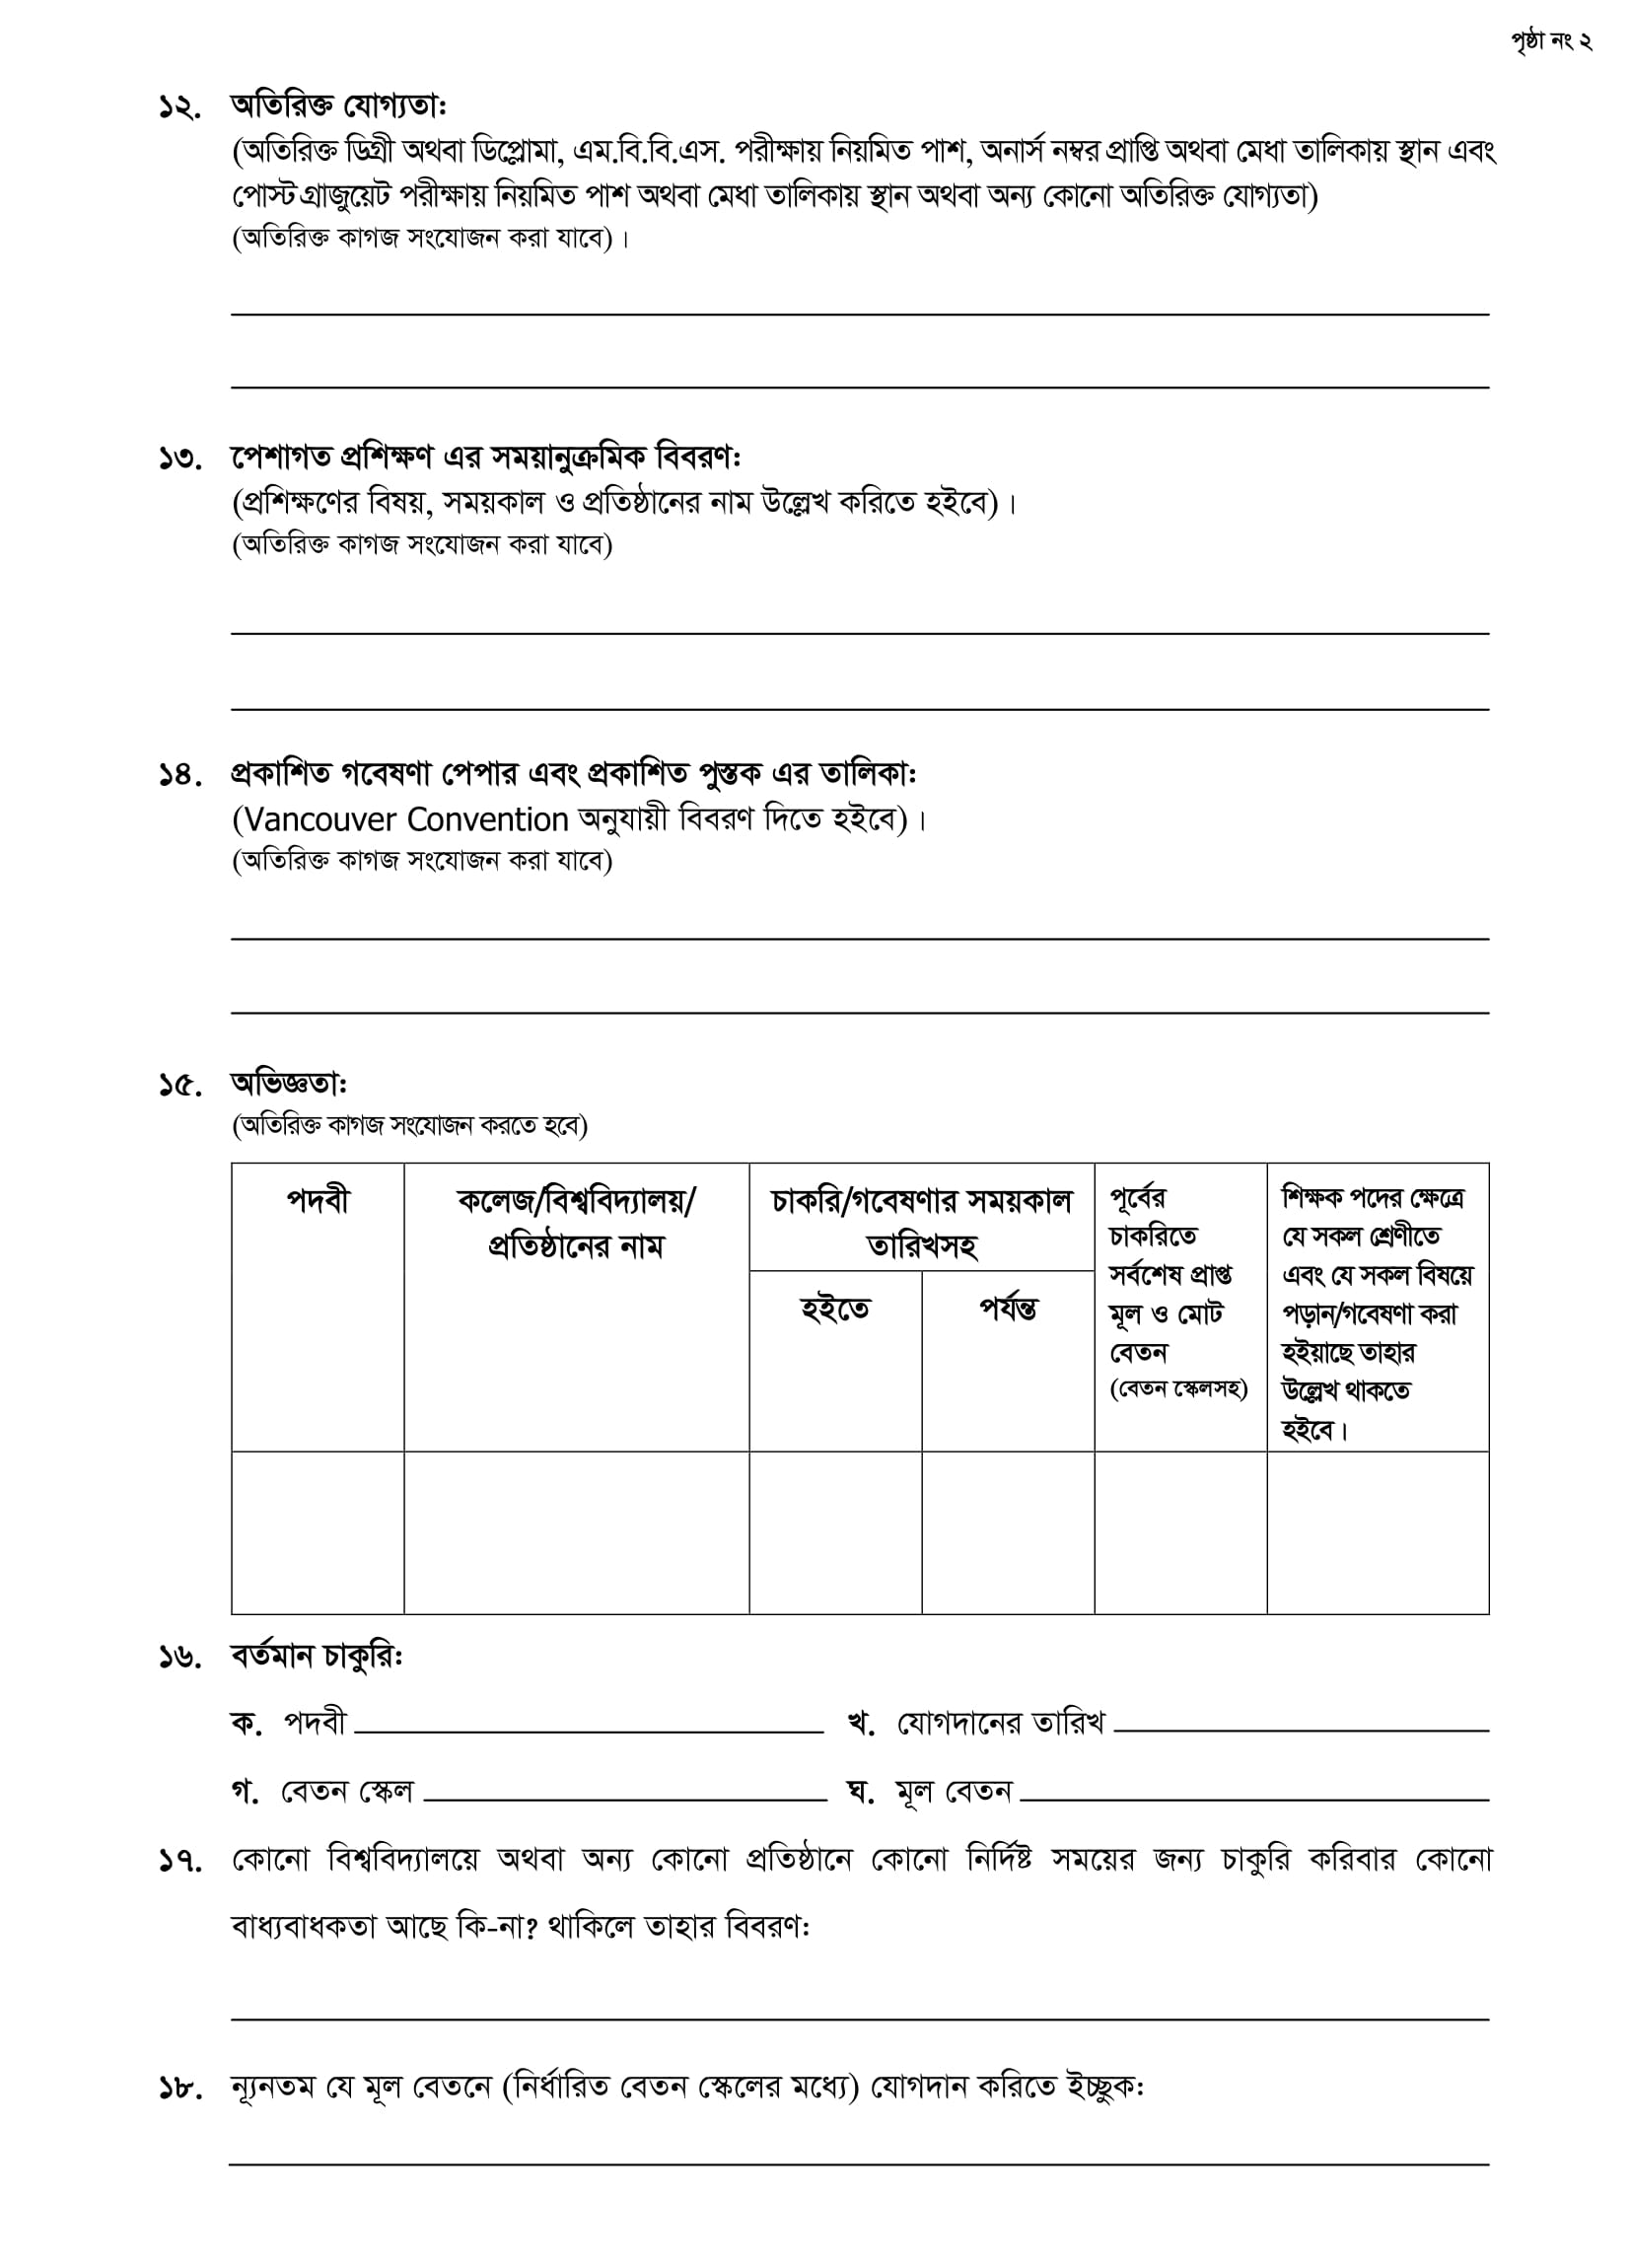 bsmmu job circular 2019 jobs test bd